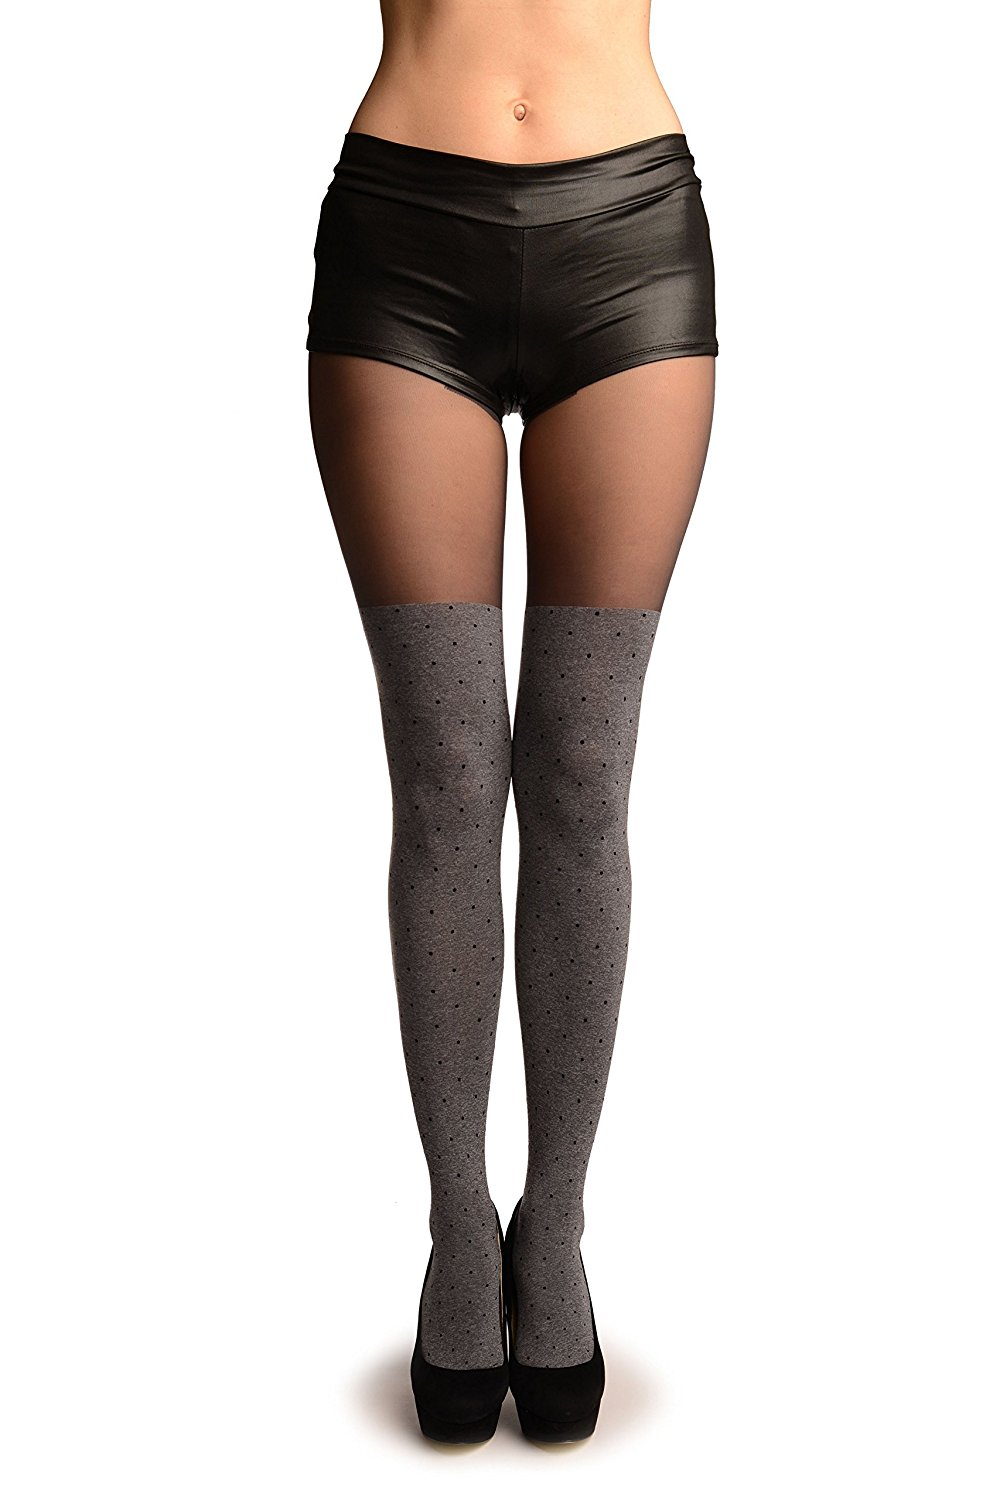 16c3bd207 Grey With Black Polka Dots Faux Stockings With Sheer Top Tights - Pantyhose  (Tights)